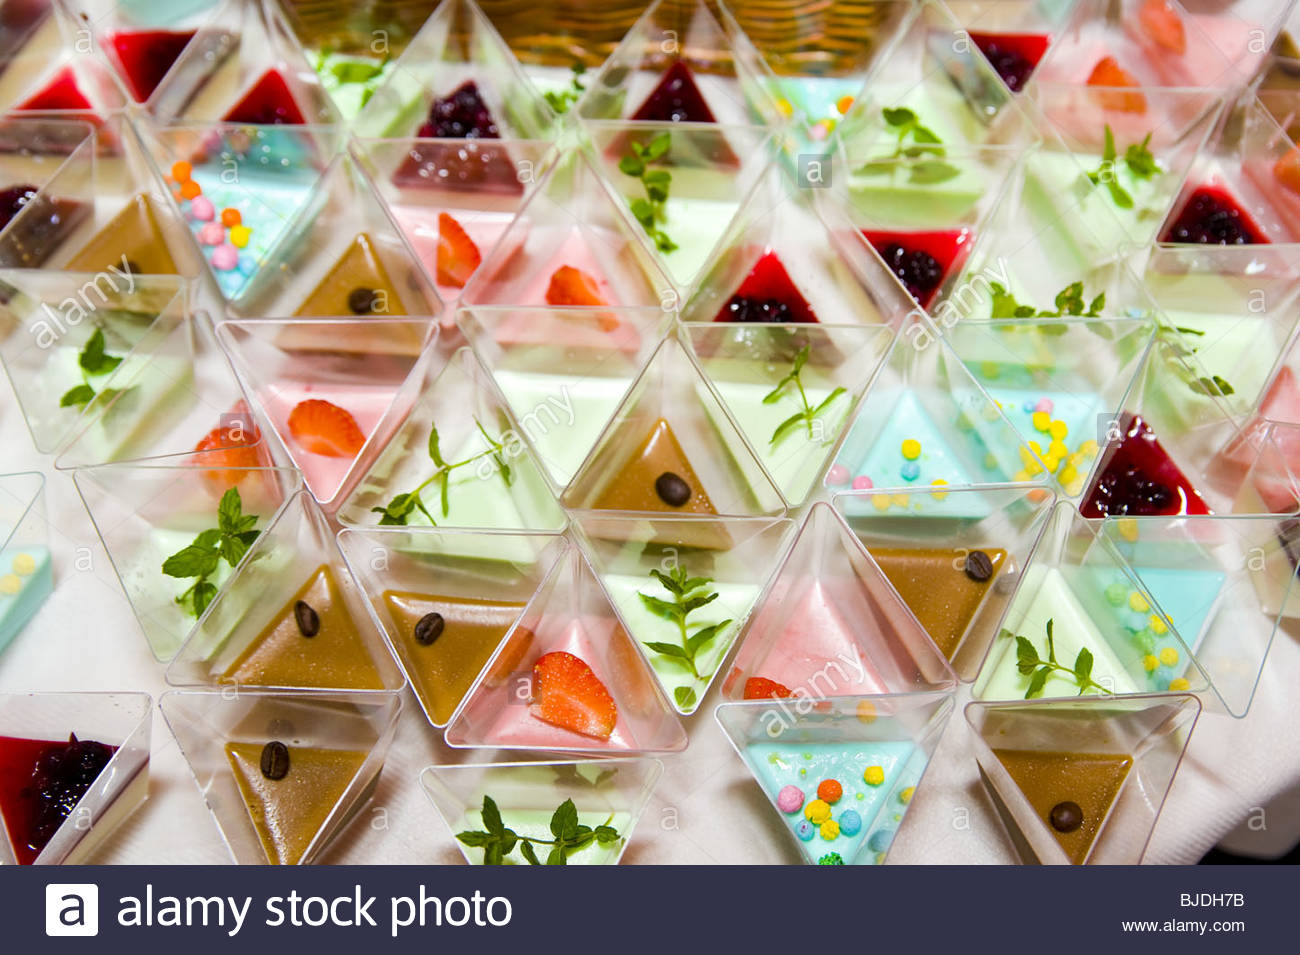 Fancy desserts in triangle containers - Stock Image